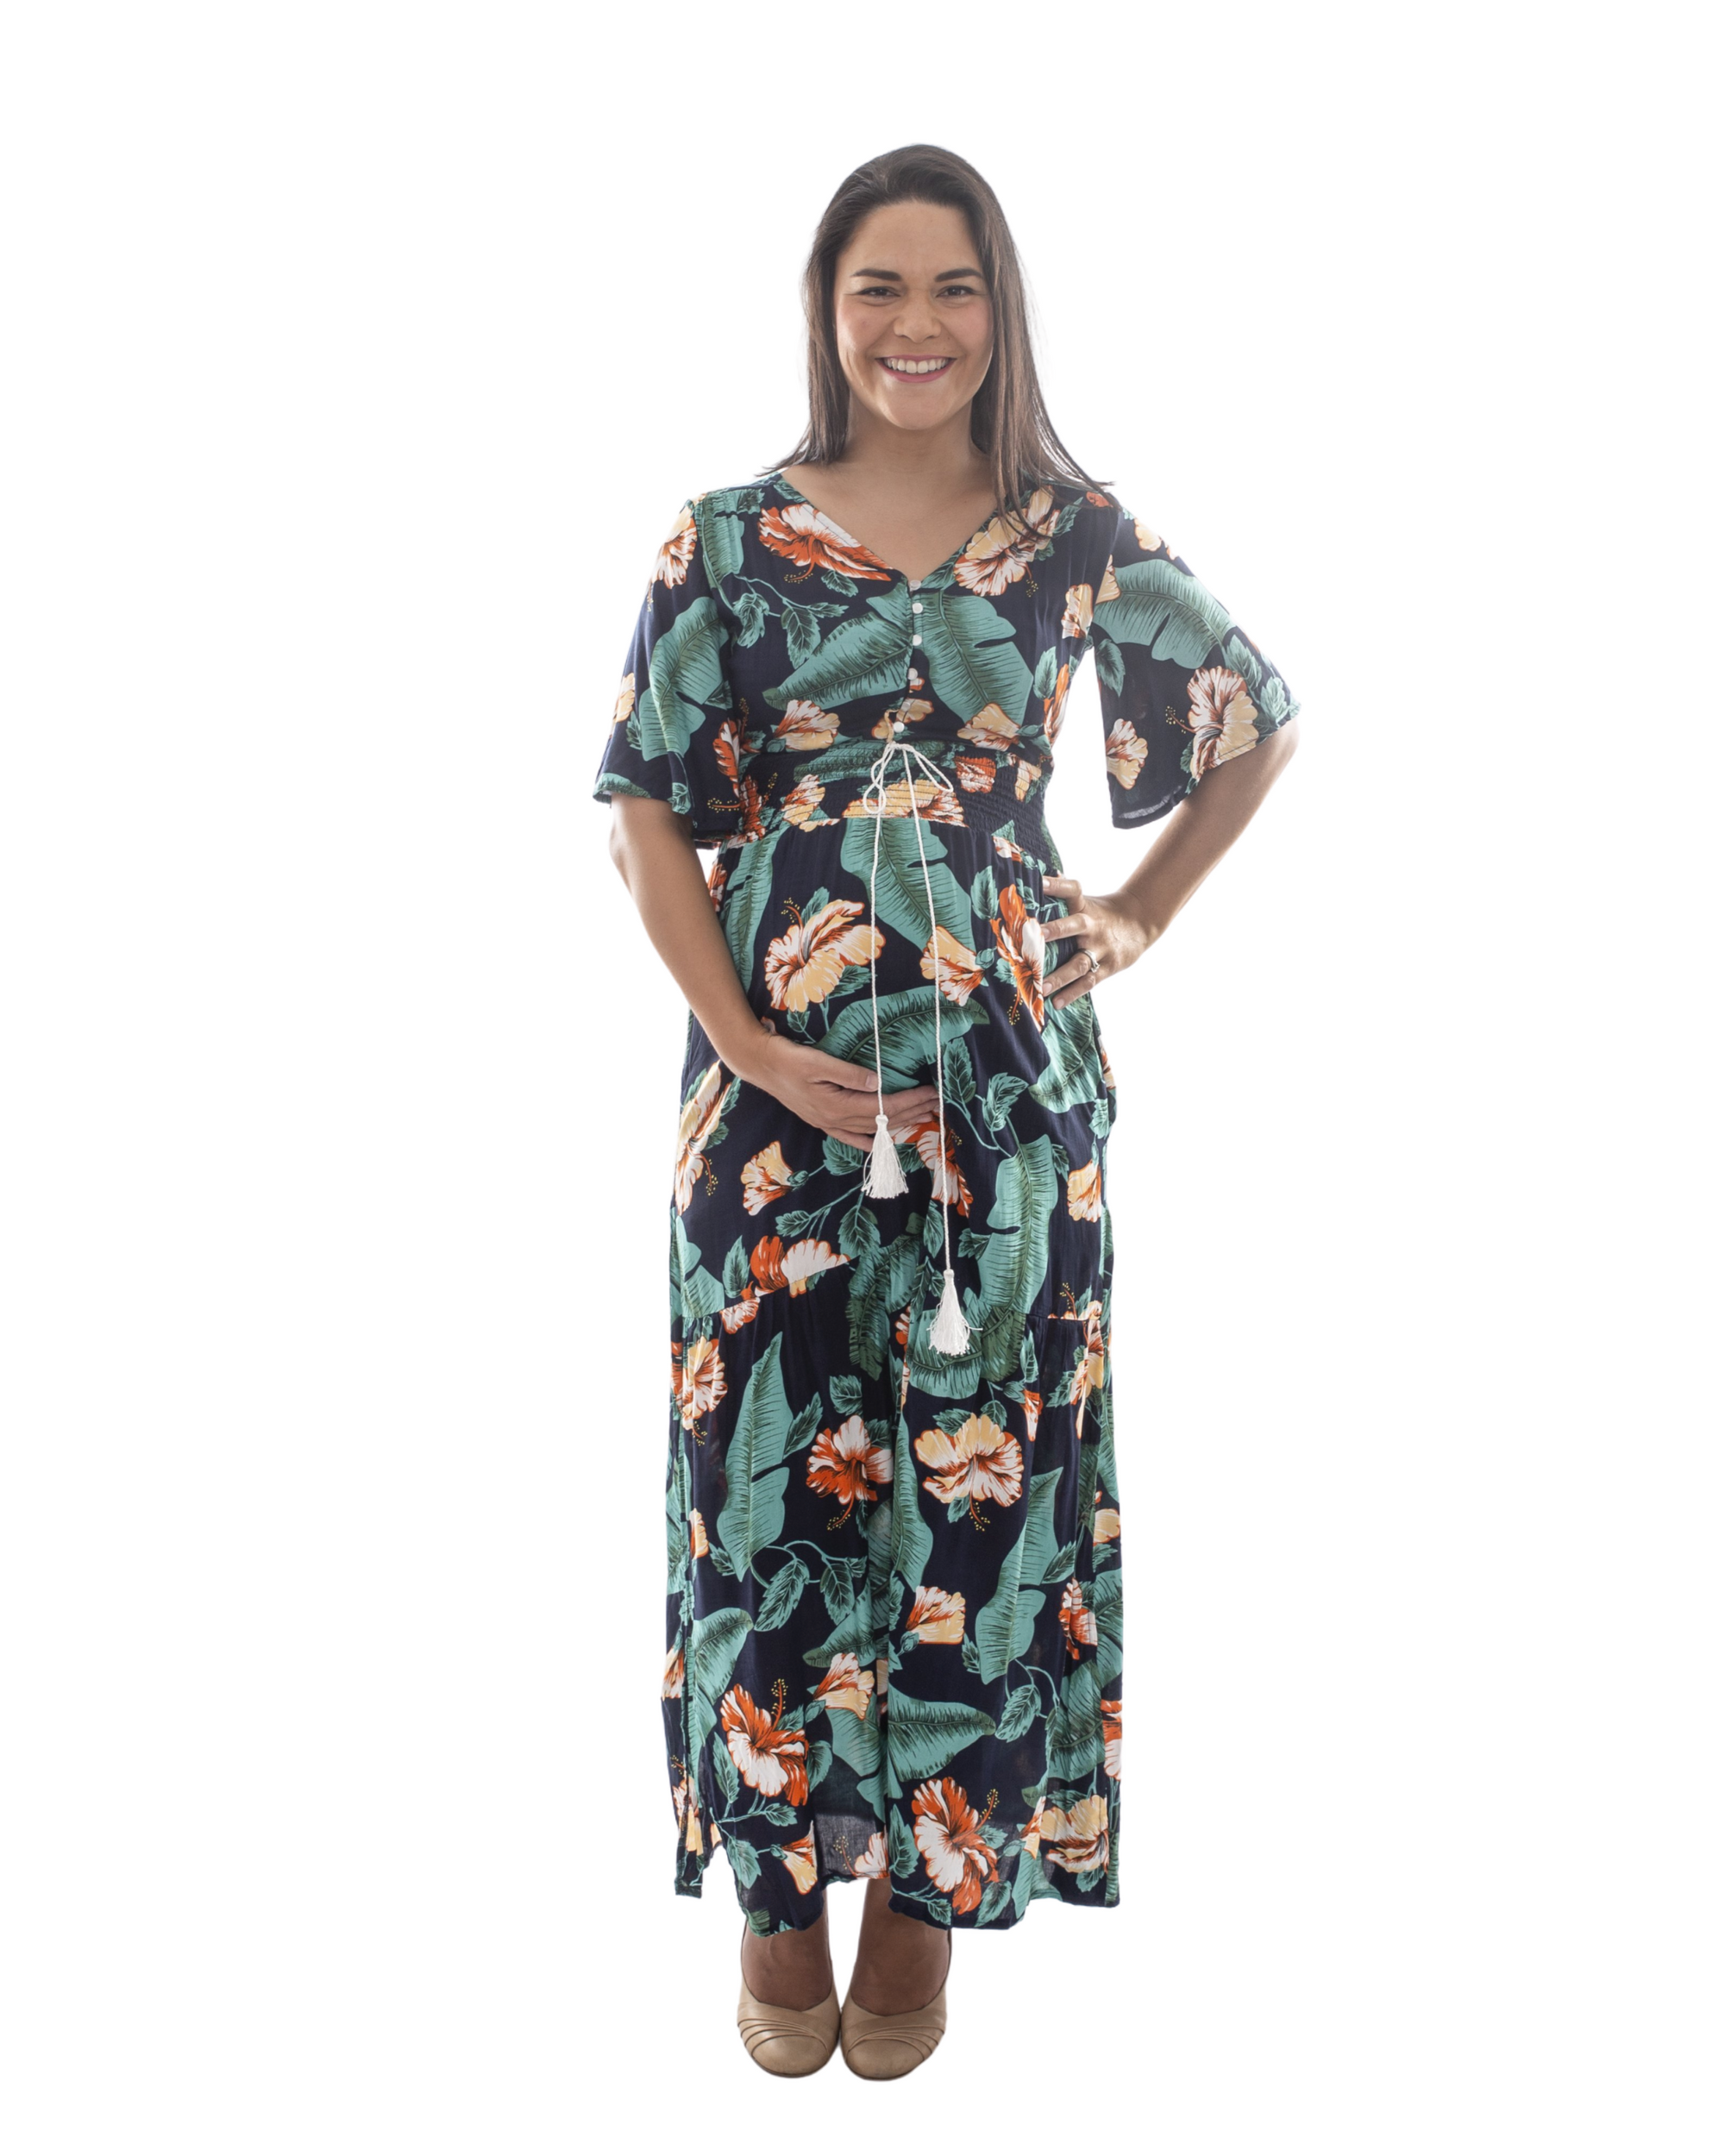 Mamushka 'Zelli Marie' Maternity & Nursing Dress